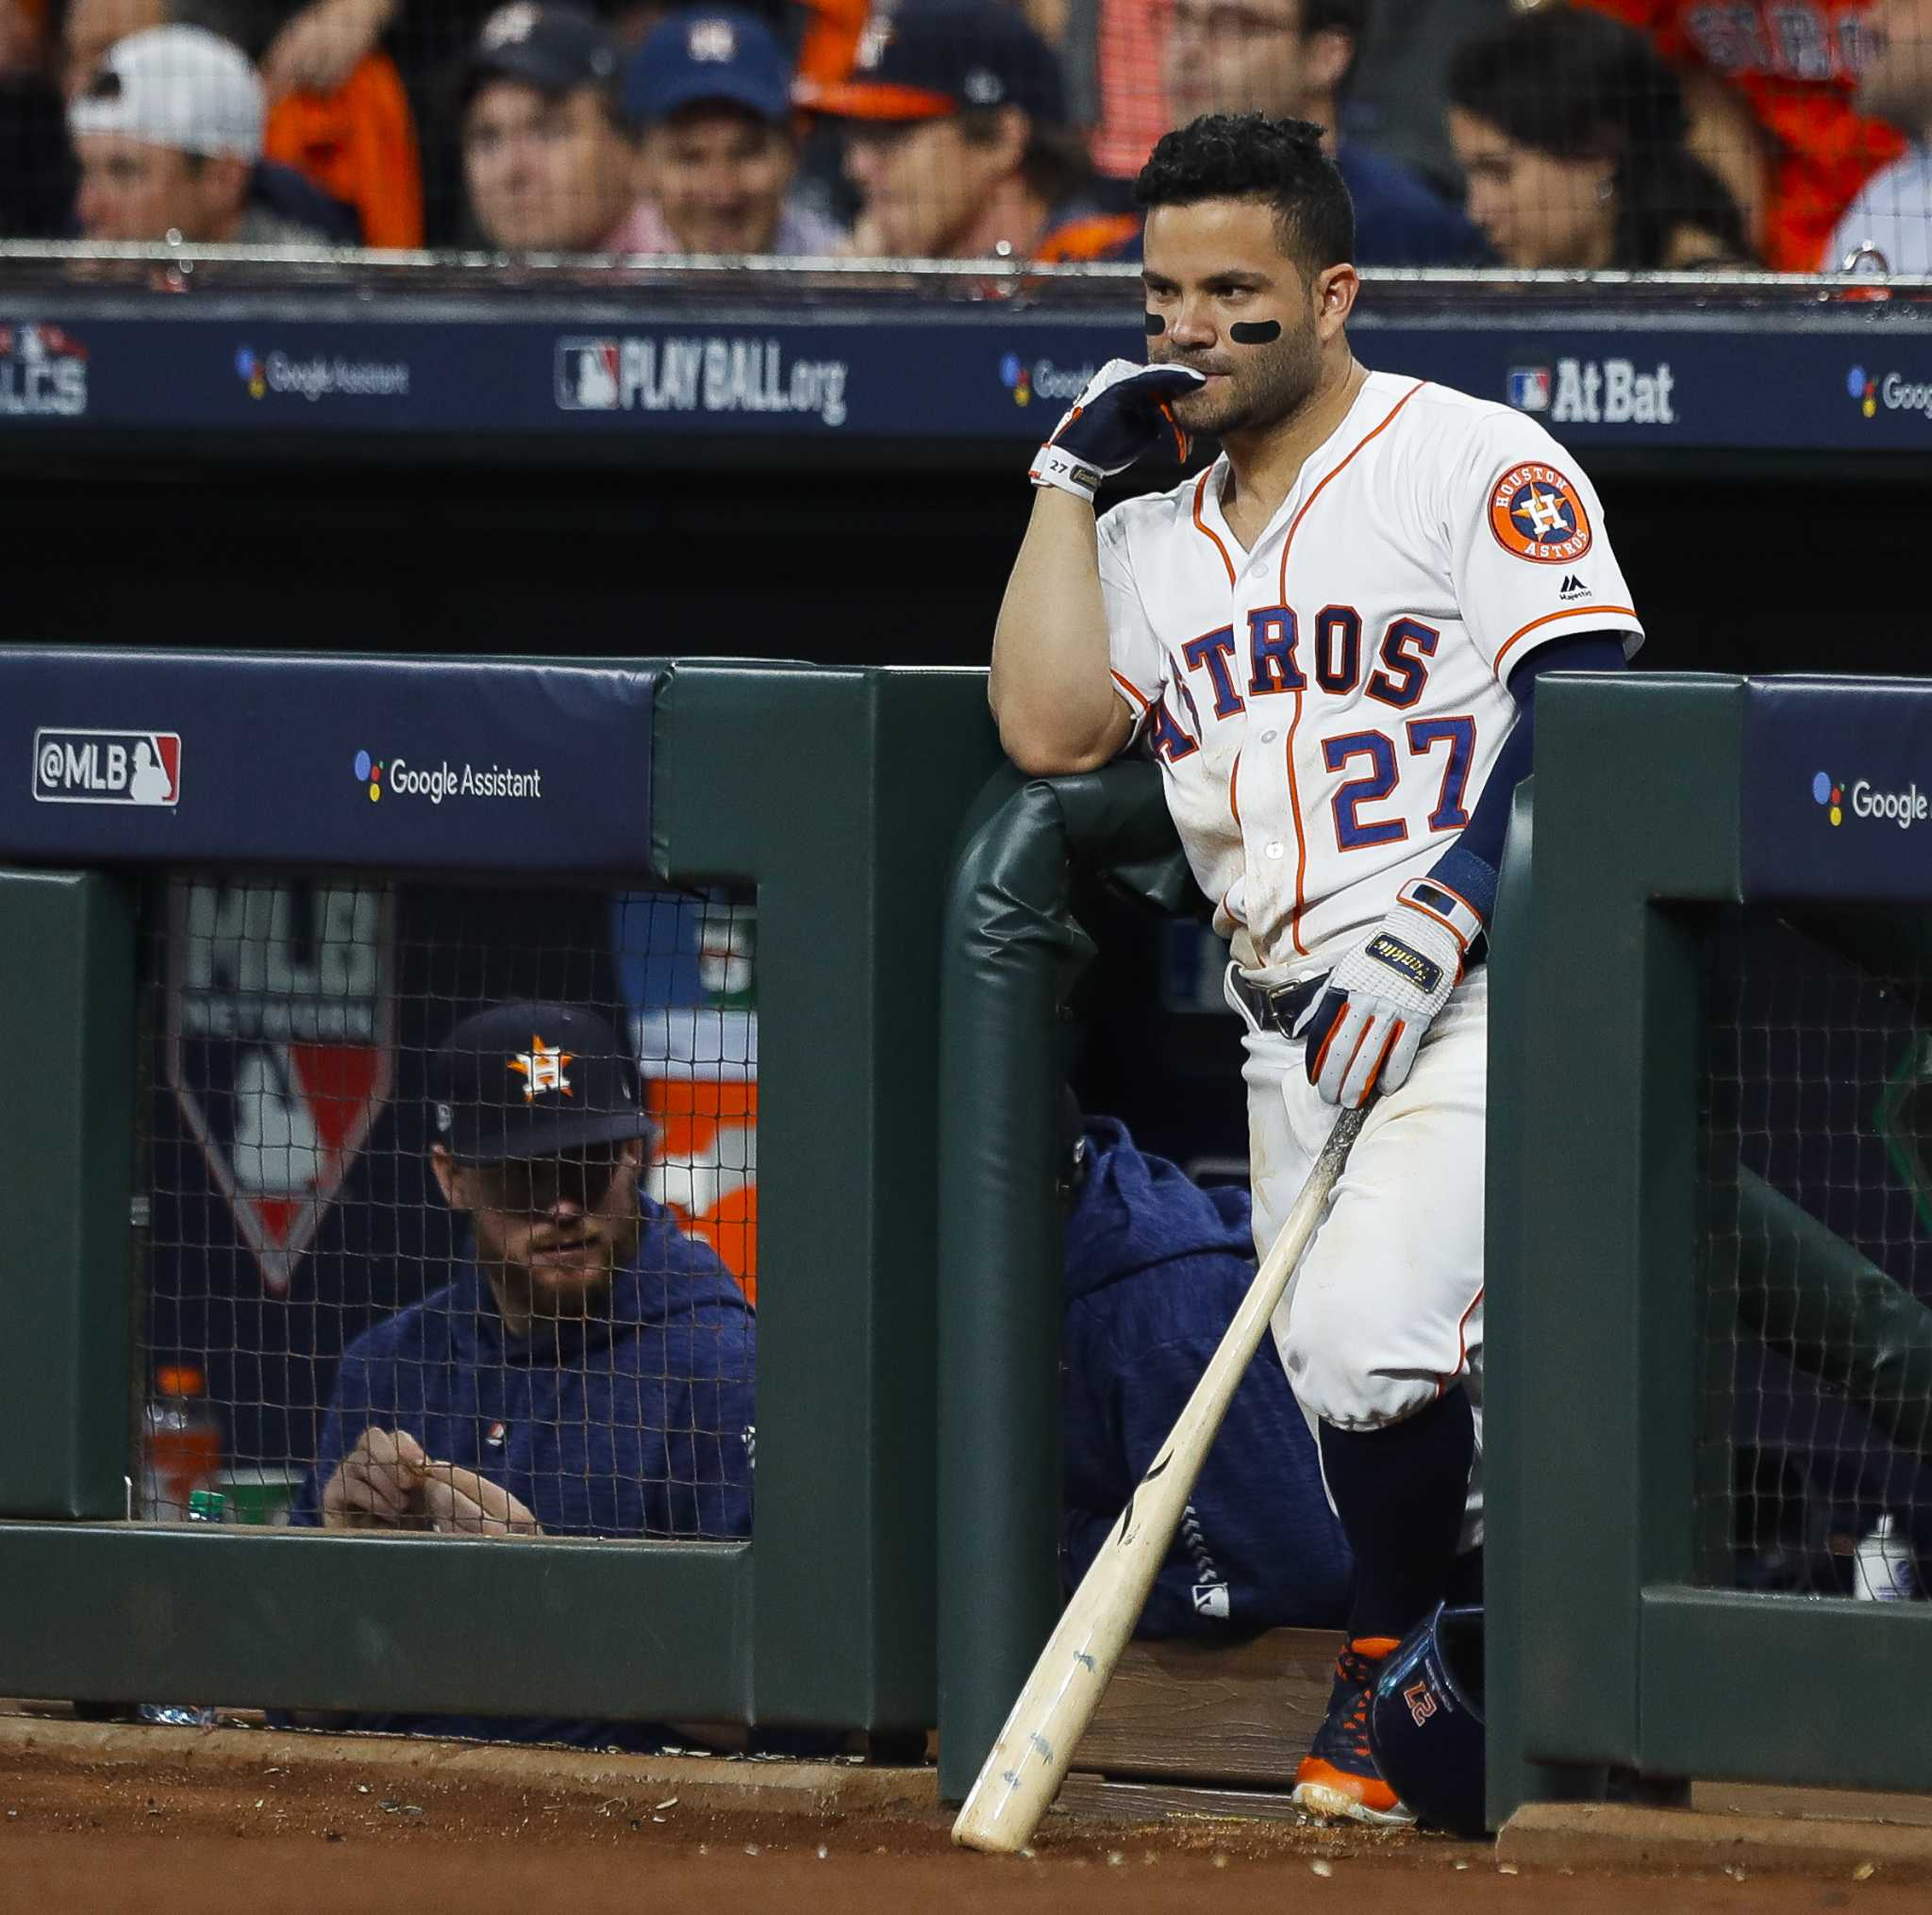 WE GOT THIS: Houston Astros could prove to be comeback kids - Houston Chronicle